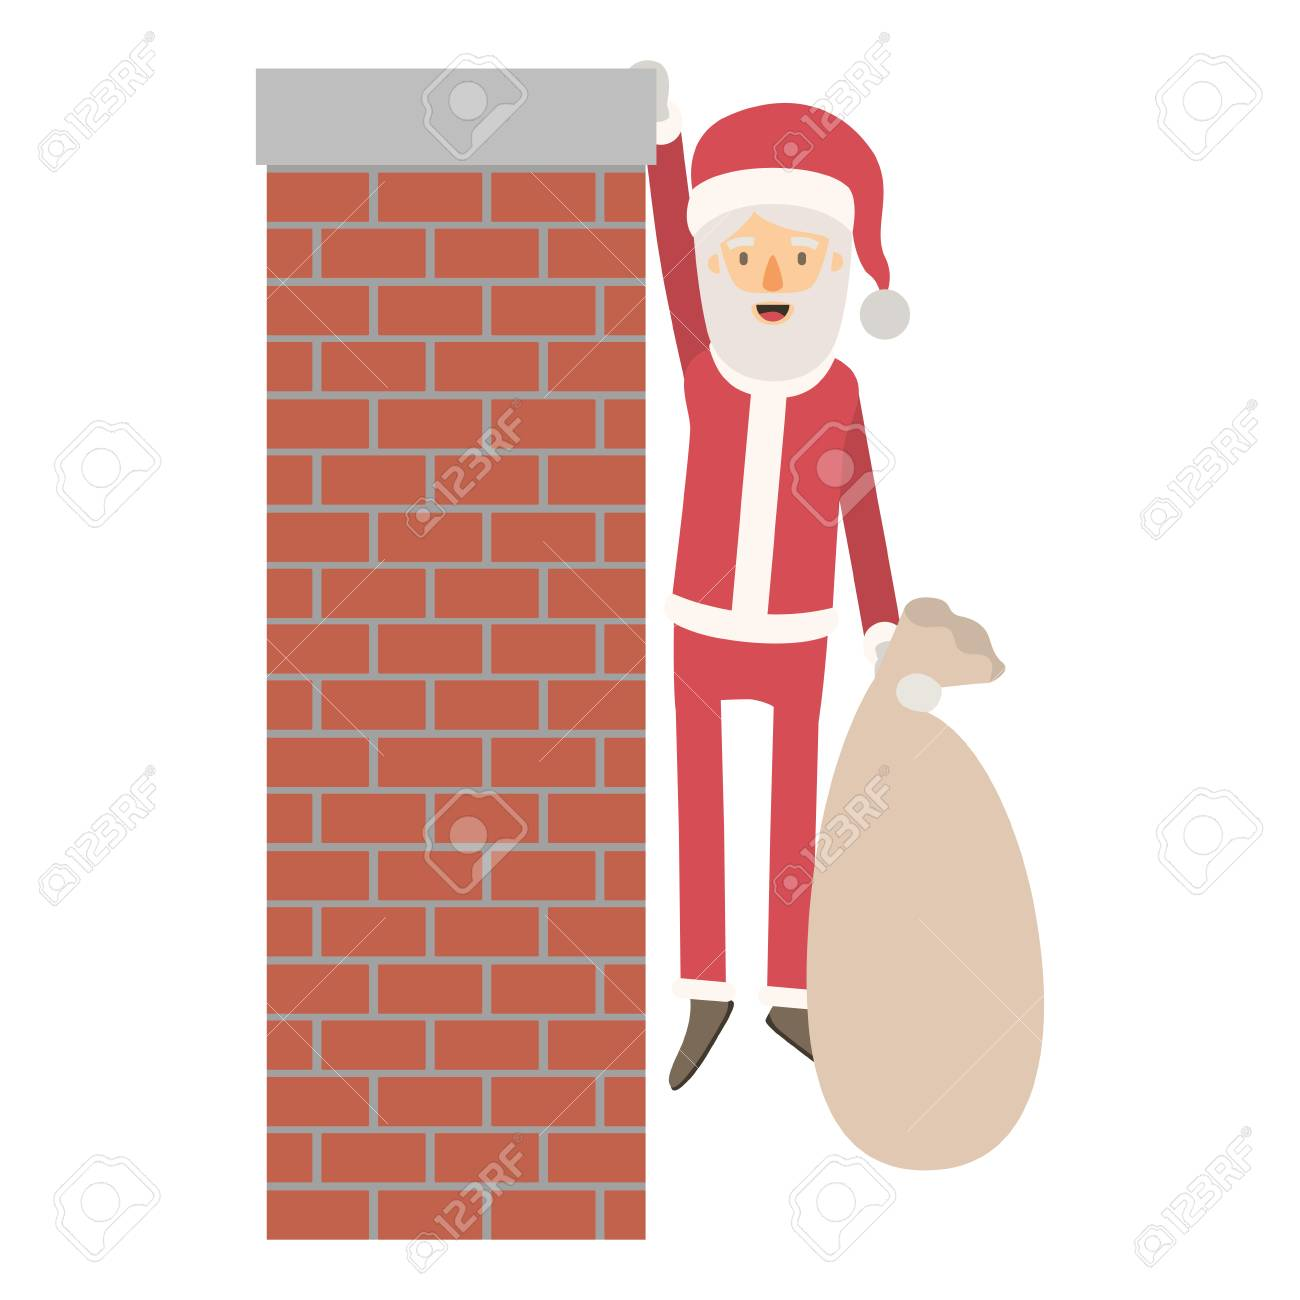 Santa Claus Caricature Full Body Hanging Of Chimney Brick Fireplace